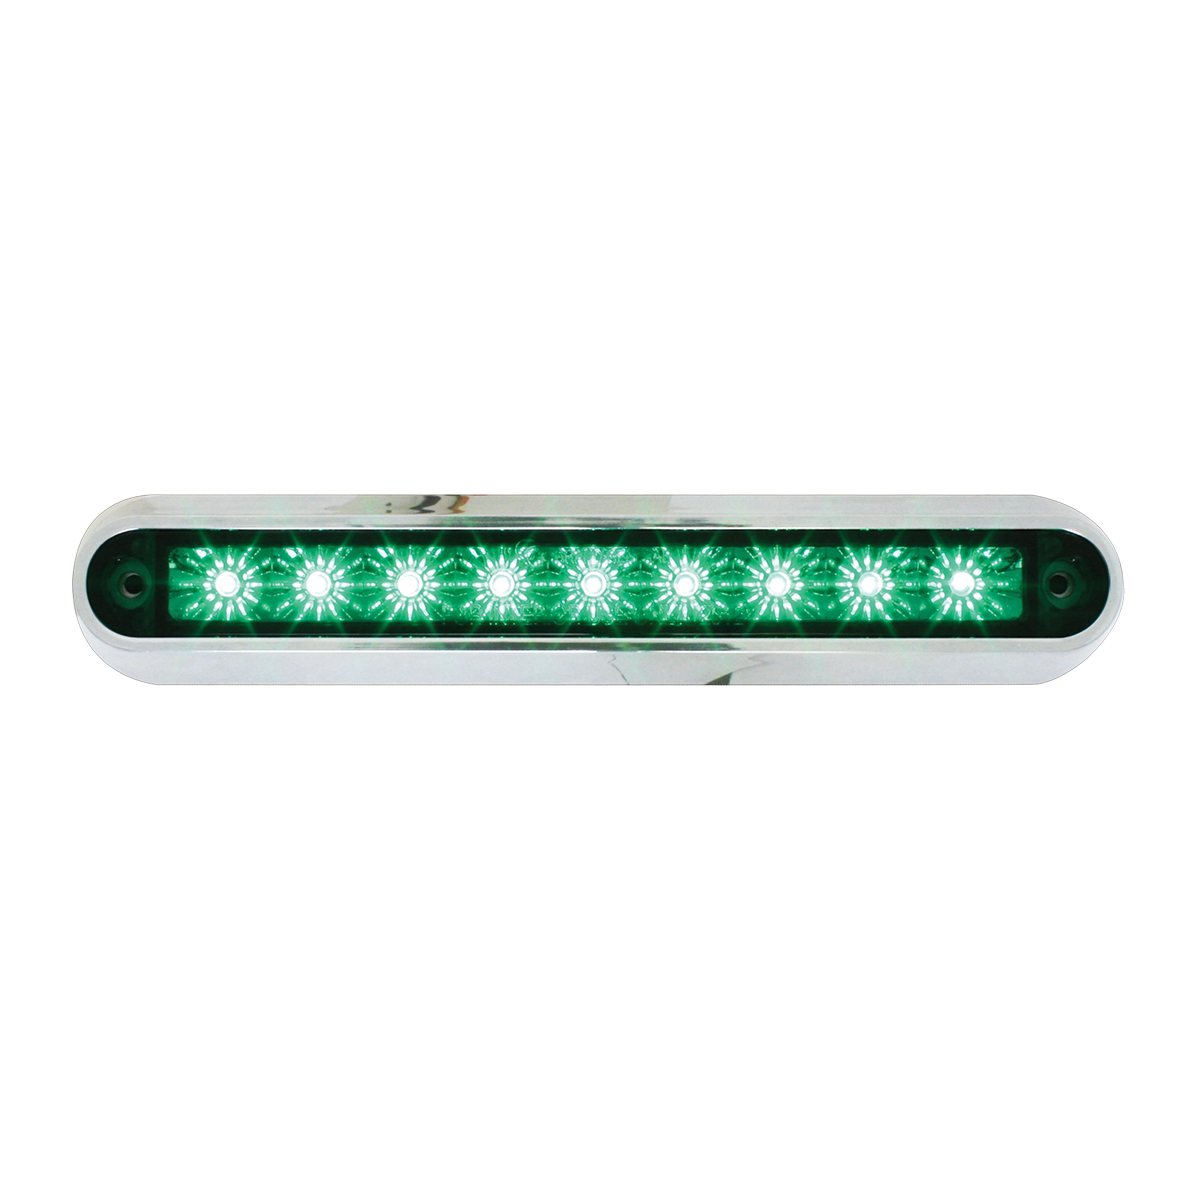 "76096 6.5"" Surface Mount LED Light Bar w/ Chrome Plastic Base"